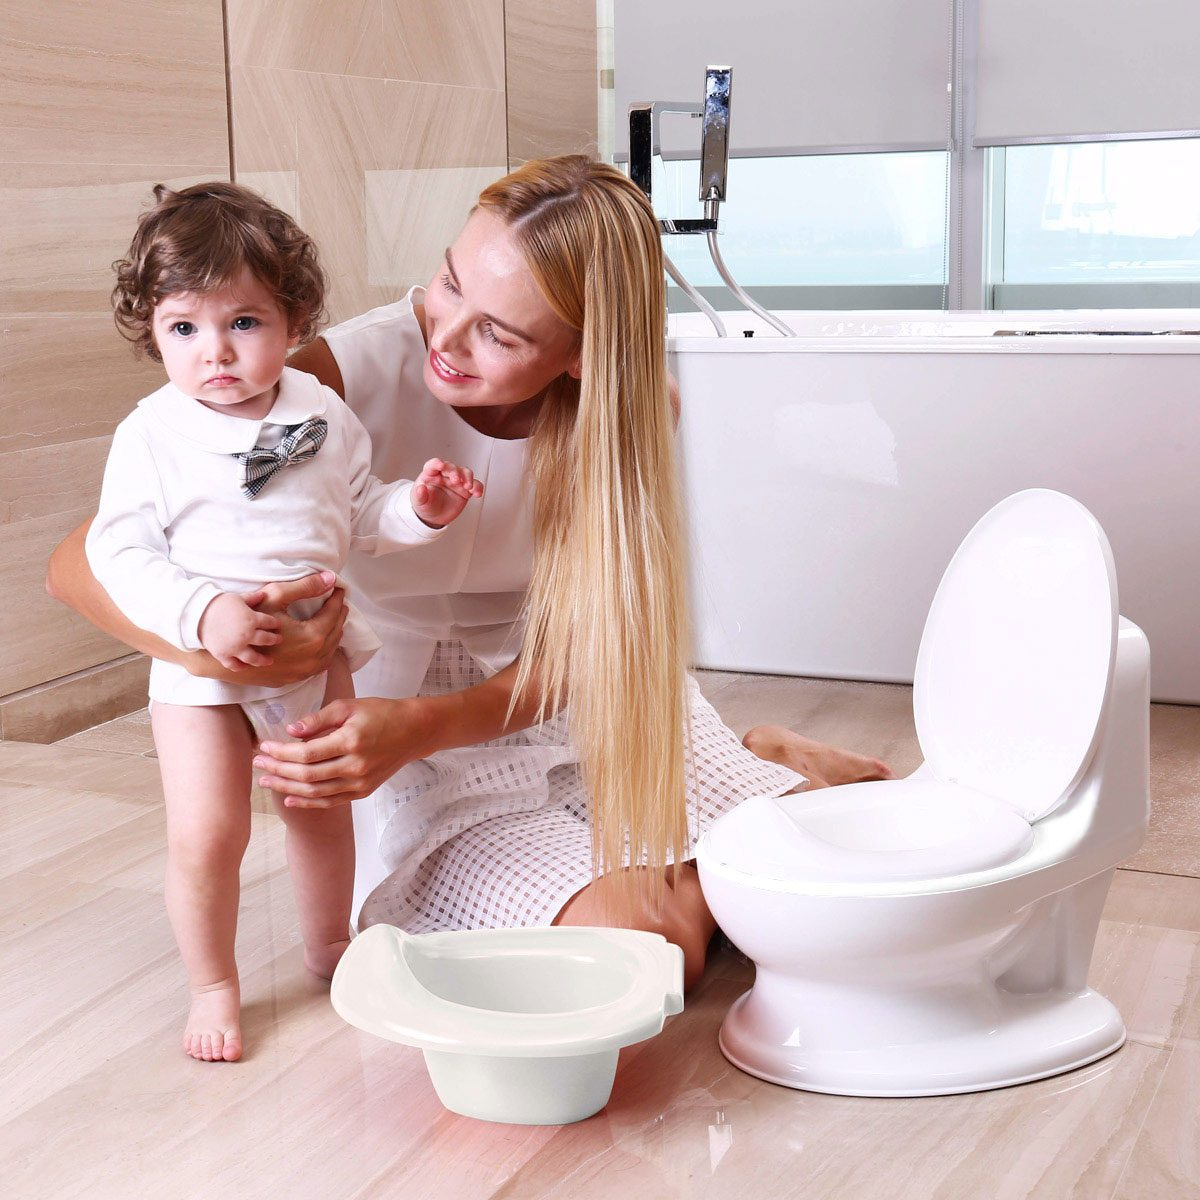 The easy to remove tray makes cleaning the potty simple